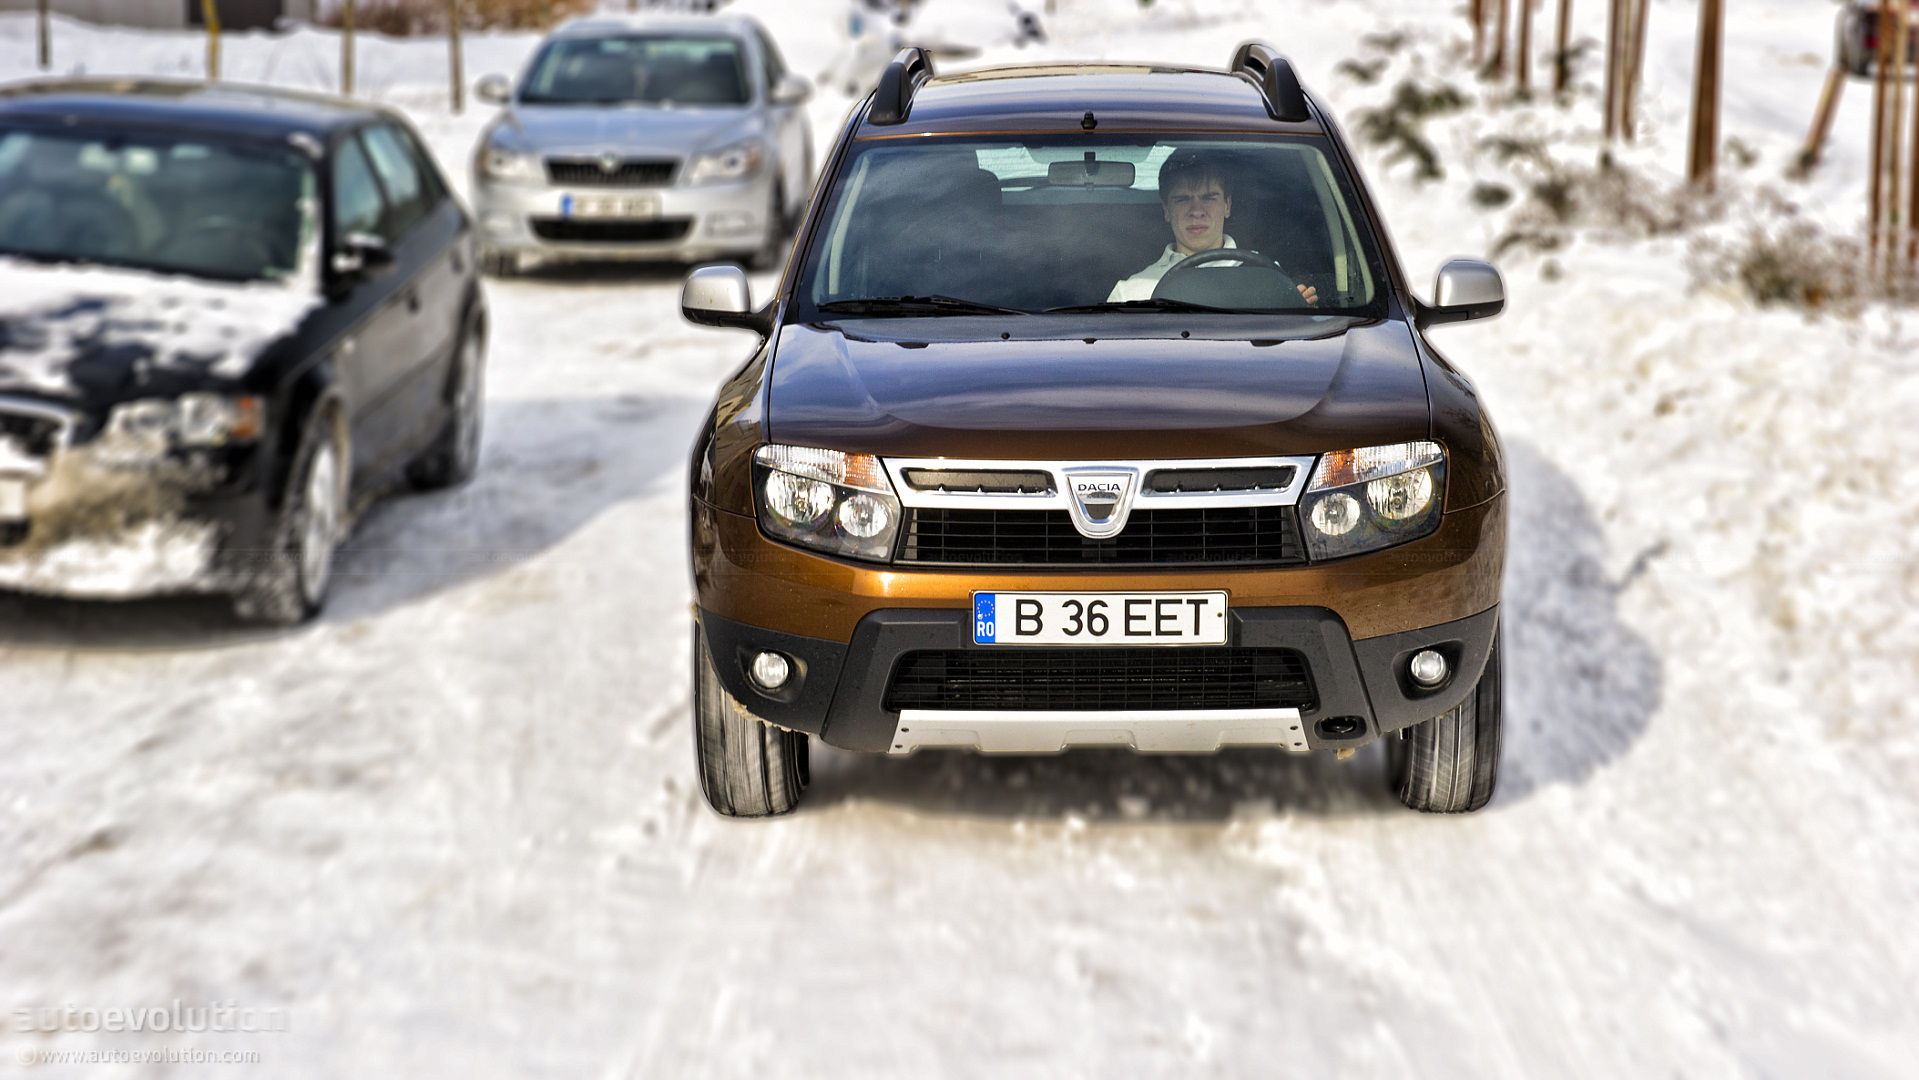 dacia duster review page 2 autoevolution. Black Bedroom Furniture Sets. Home Design Ideas